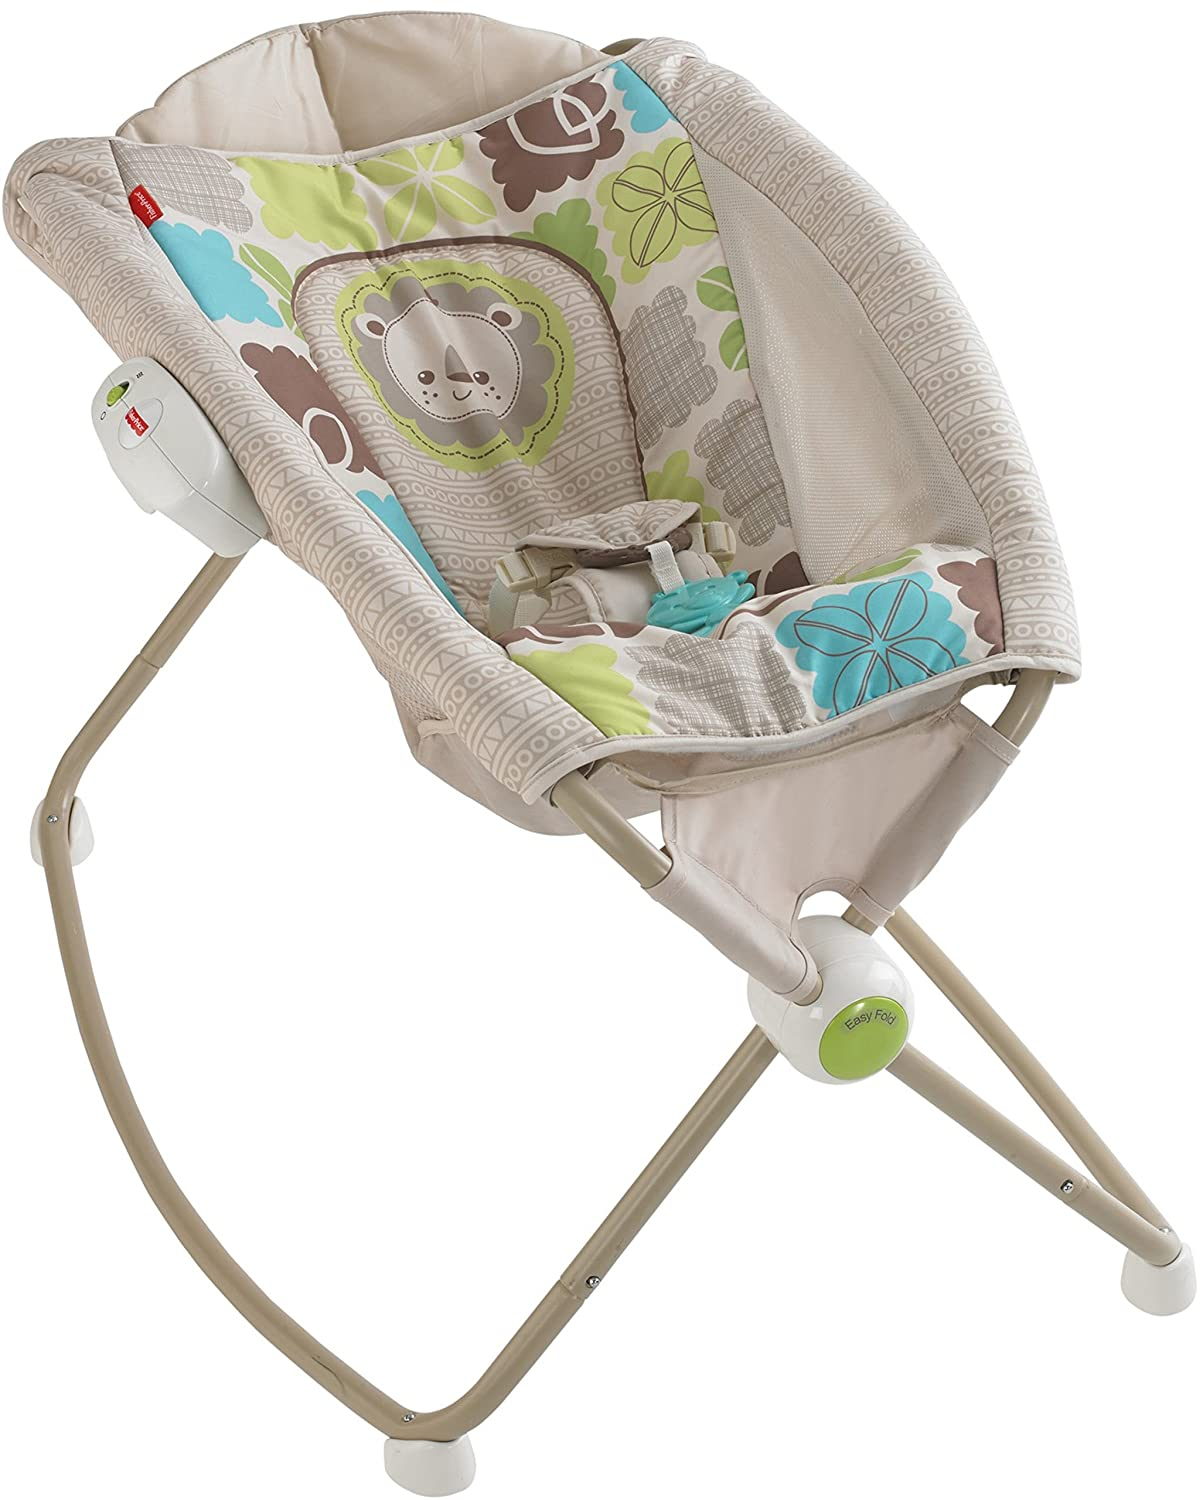 Fisher Price Rock n Play Sleeper Rainforest Friends baby Toddler Rocker Napper